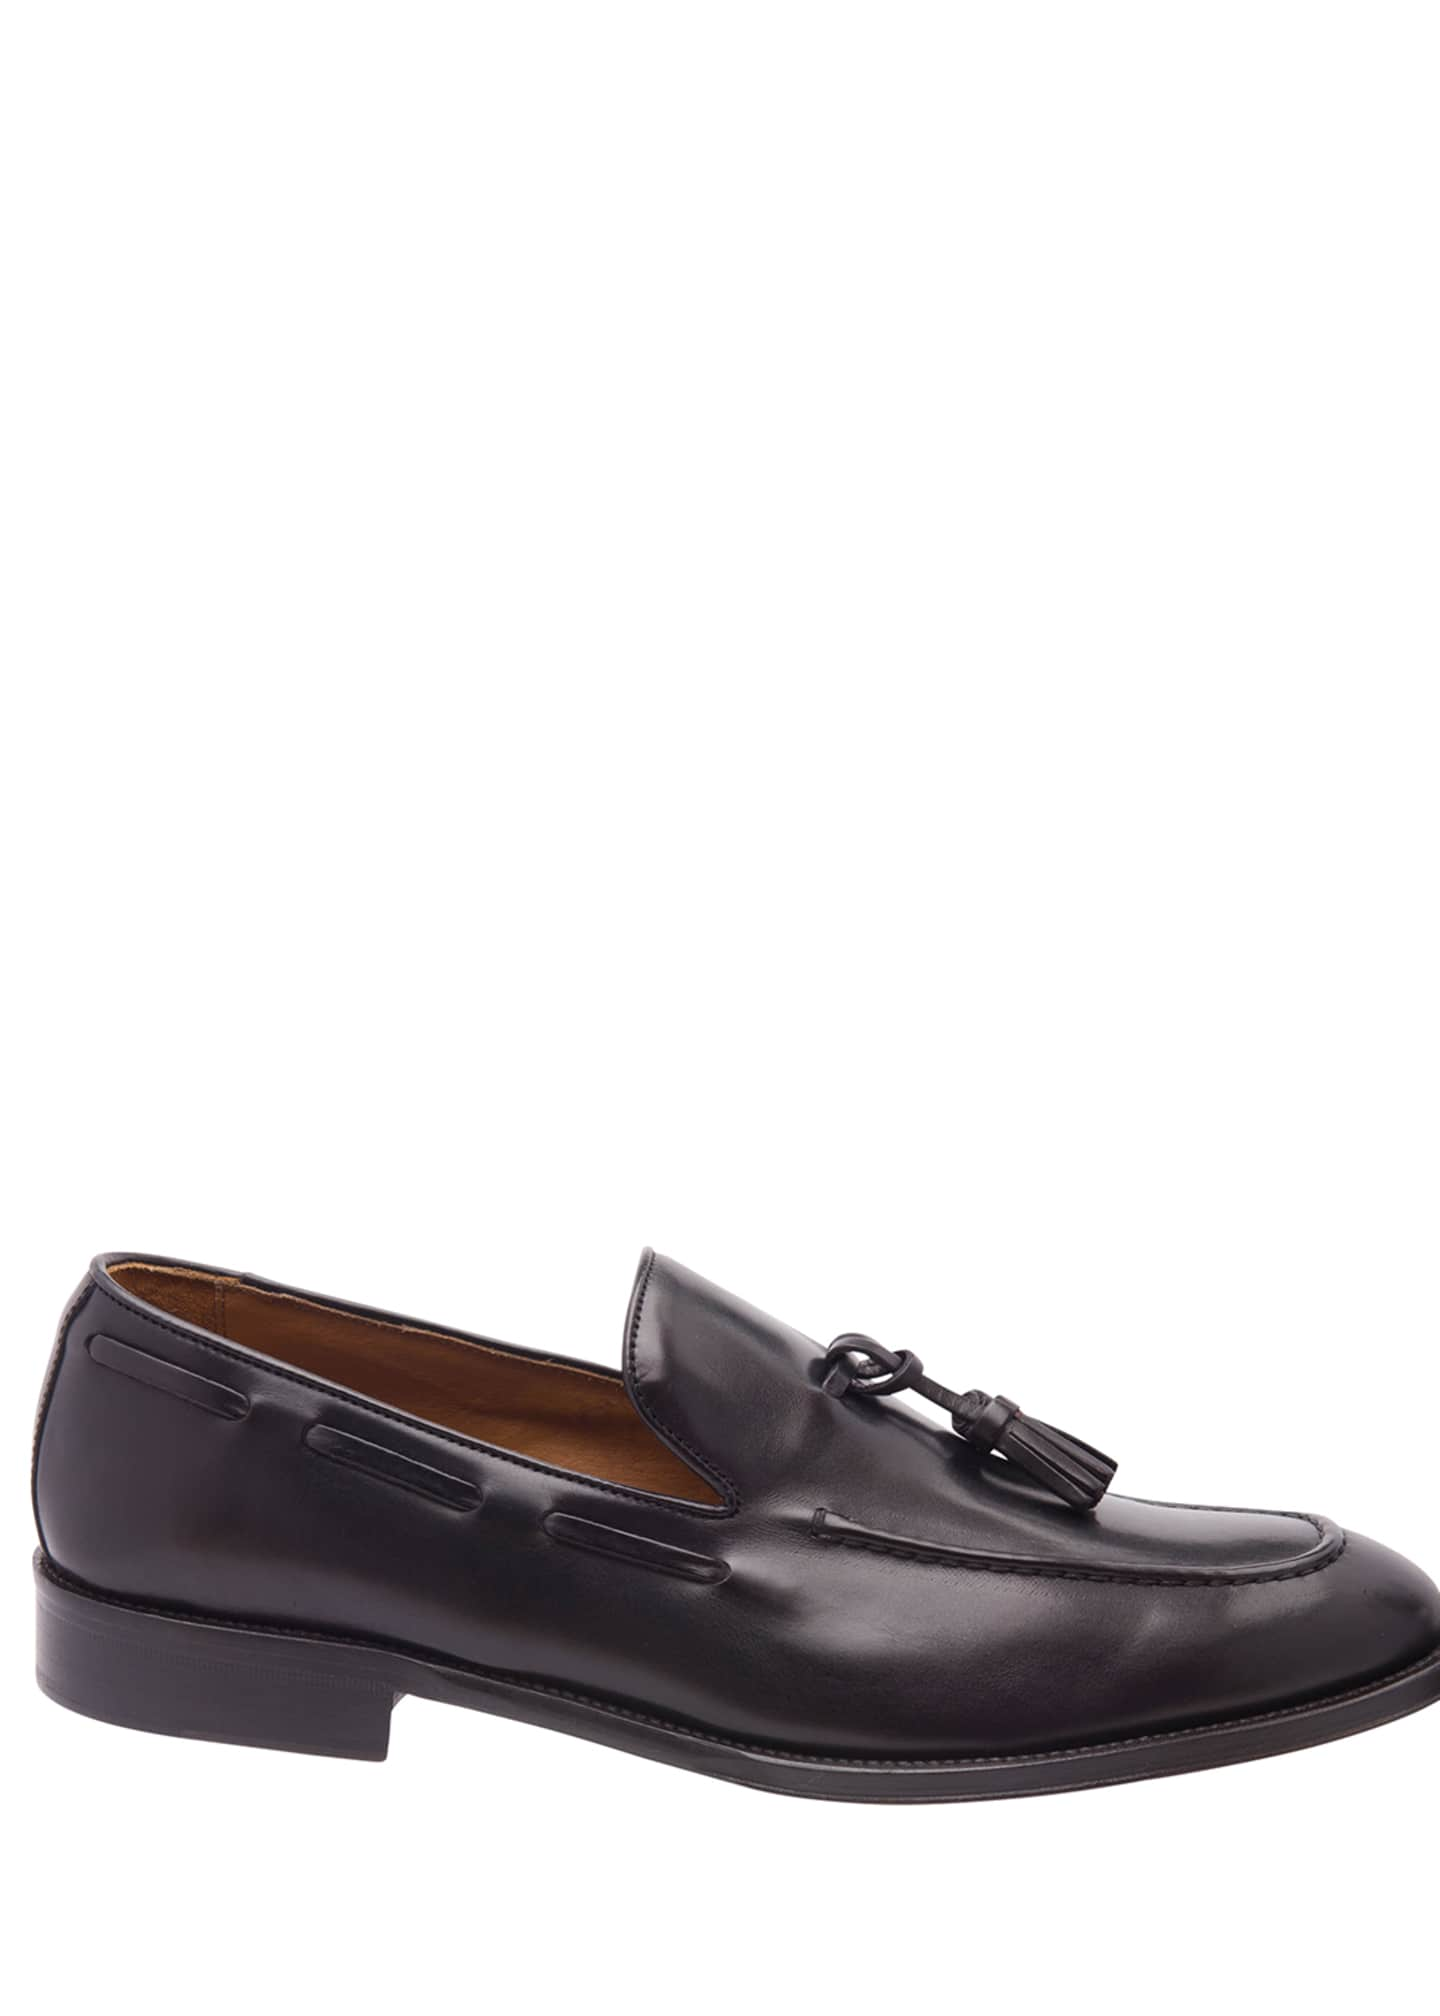 Image 3 of 5: Men's Alfio Leather Tassel Loafers